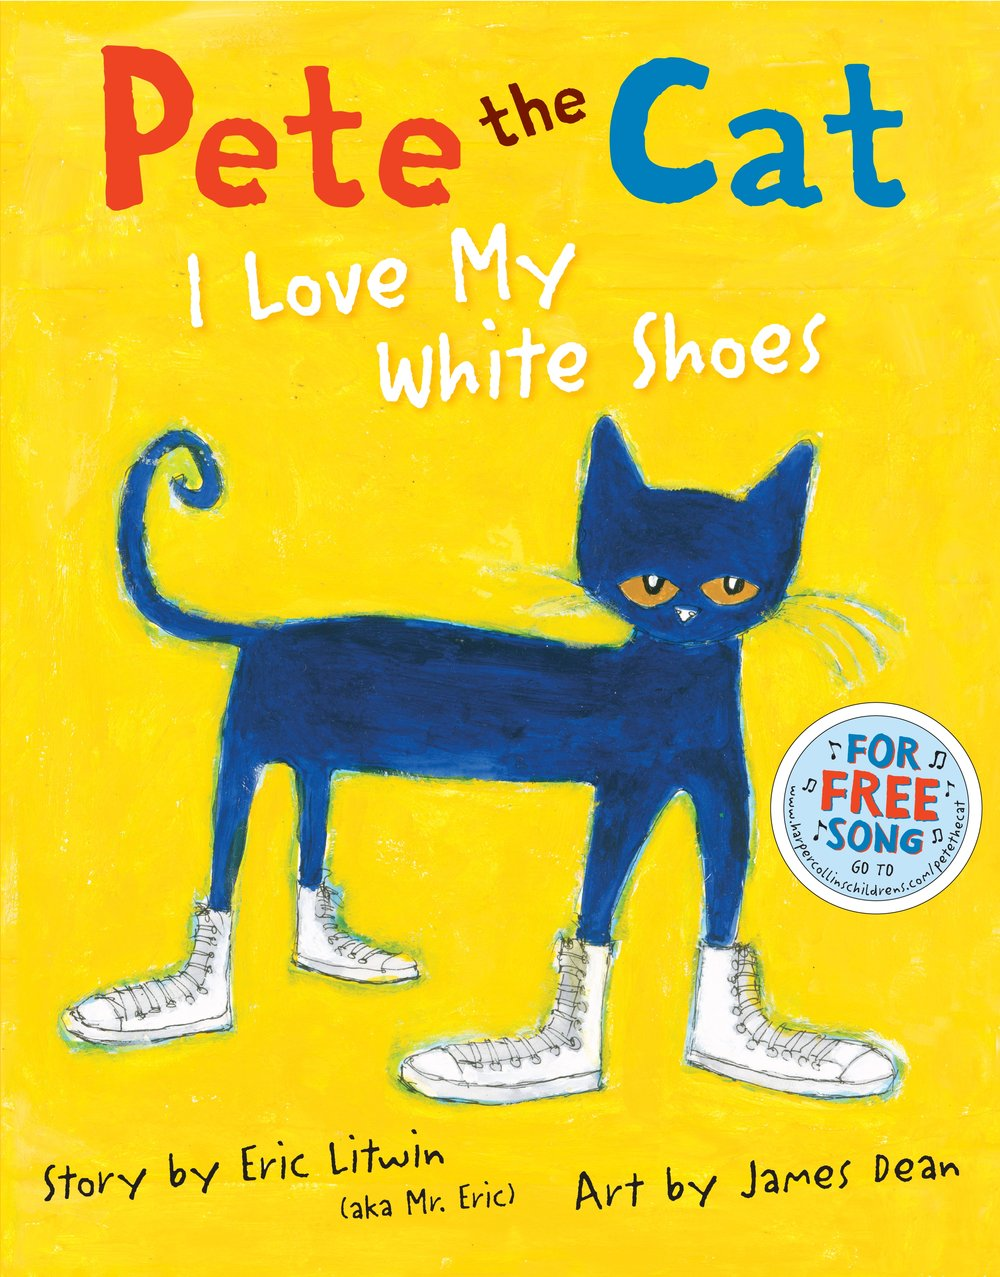 Pete the Cat I Love My White Shoes, by Eric Litwin (3).JPG